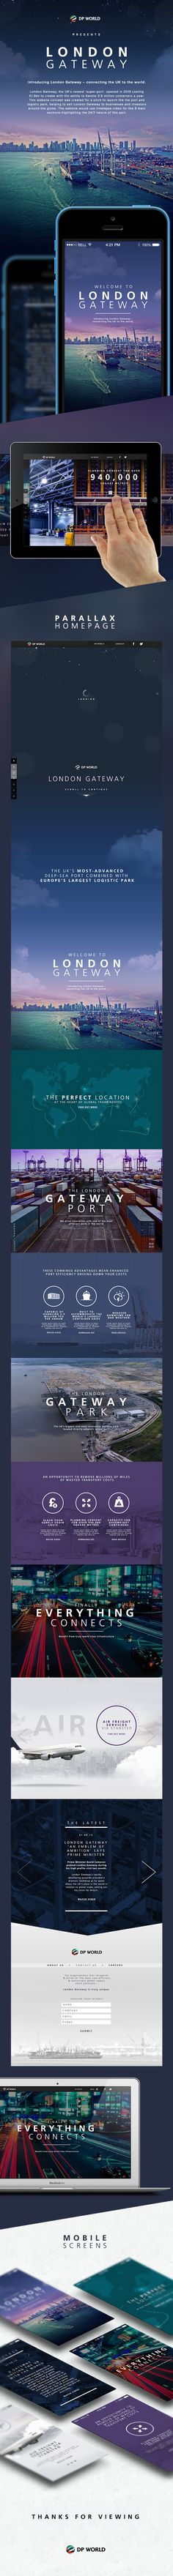 Introducing London Gateway – connecting the UK to the world.This website concept was created for a pitch to launch the the port and logistic park, helping to sell London Gateway to businesses and investors around the globe. Layout Design, Interaktives Design, Web Layout, Site Design, Email Design, Gui Interface, User Interface Design, Webdesign Inspiration, Web Inspiration